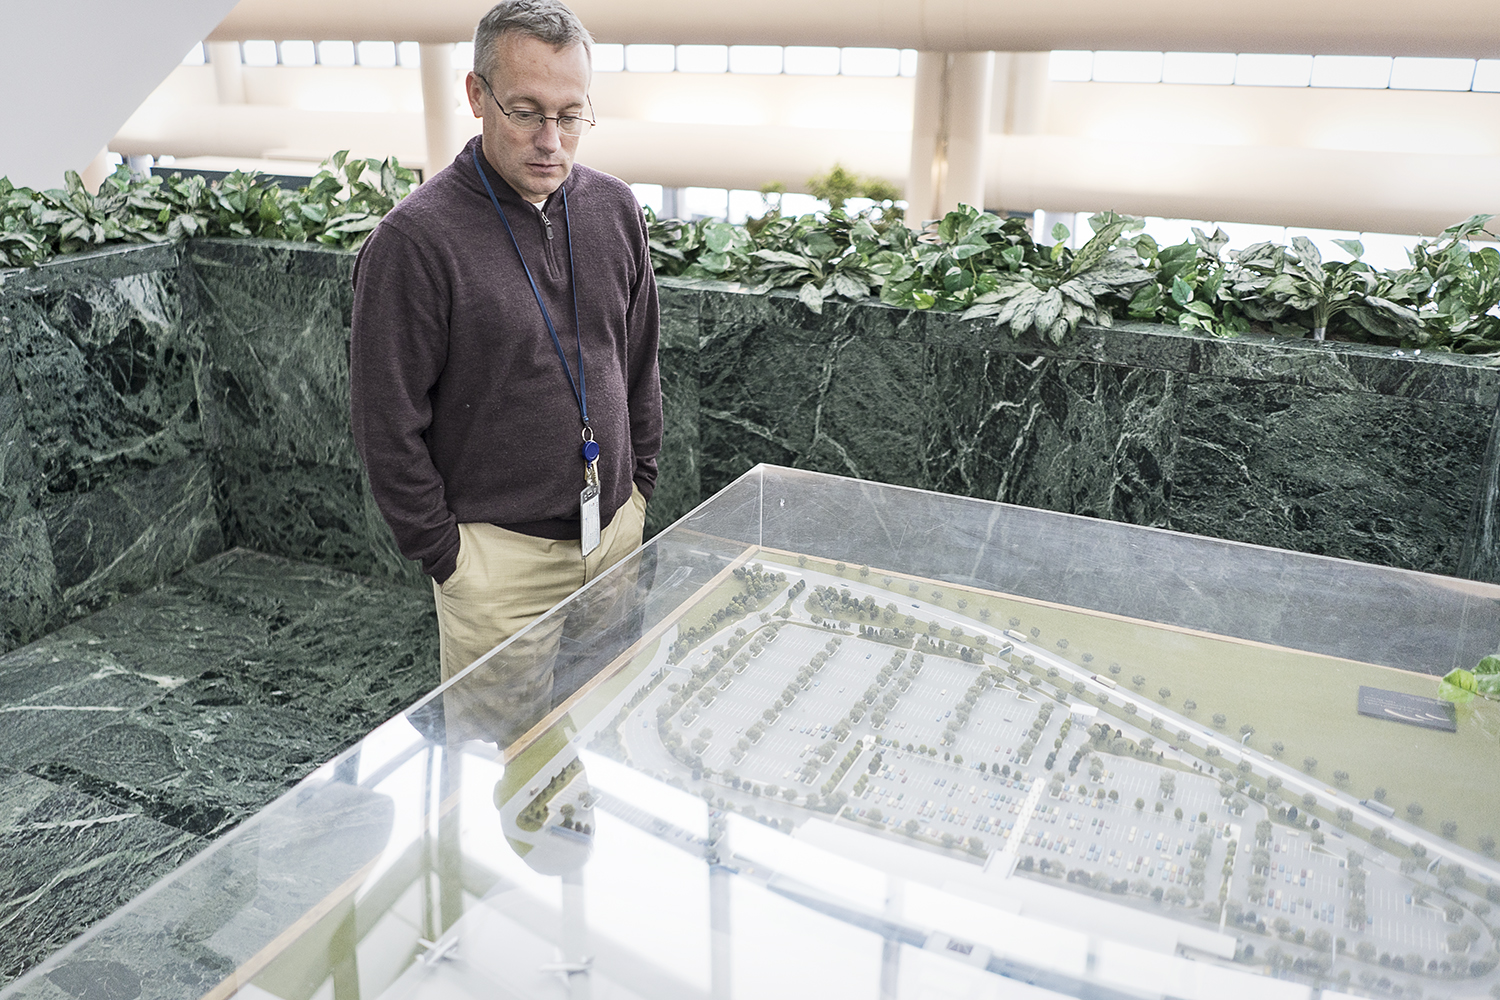 Flint, MI - Wednesday, January 3, 2018: Bishop International Airport Director Craig Williams, 48, of Fenton, looks at the scale model of Bishop as it was envisioned in the early 90's. Remarkably, the airport has very little variation than the original proposed model. Tim Galloway for FlintSide